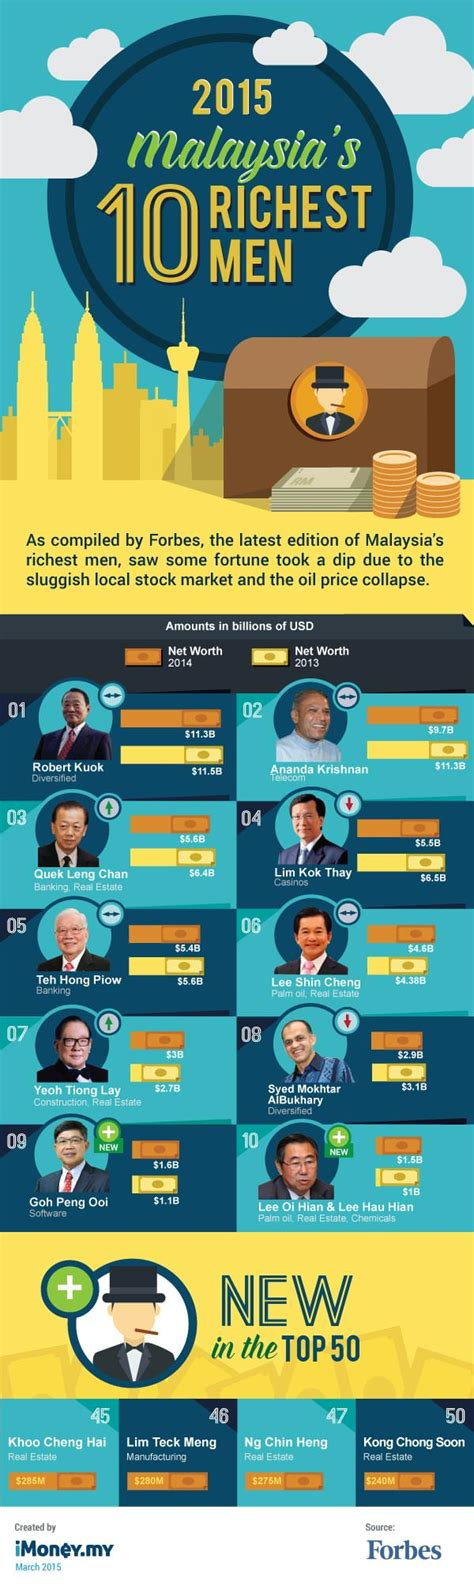 top 10 richest in malaysia 2015 infographic imoney